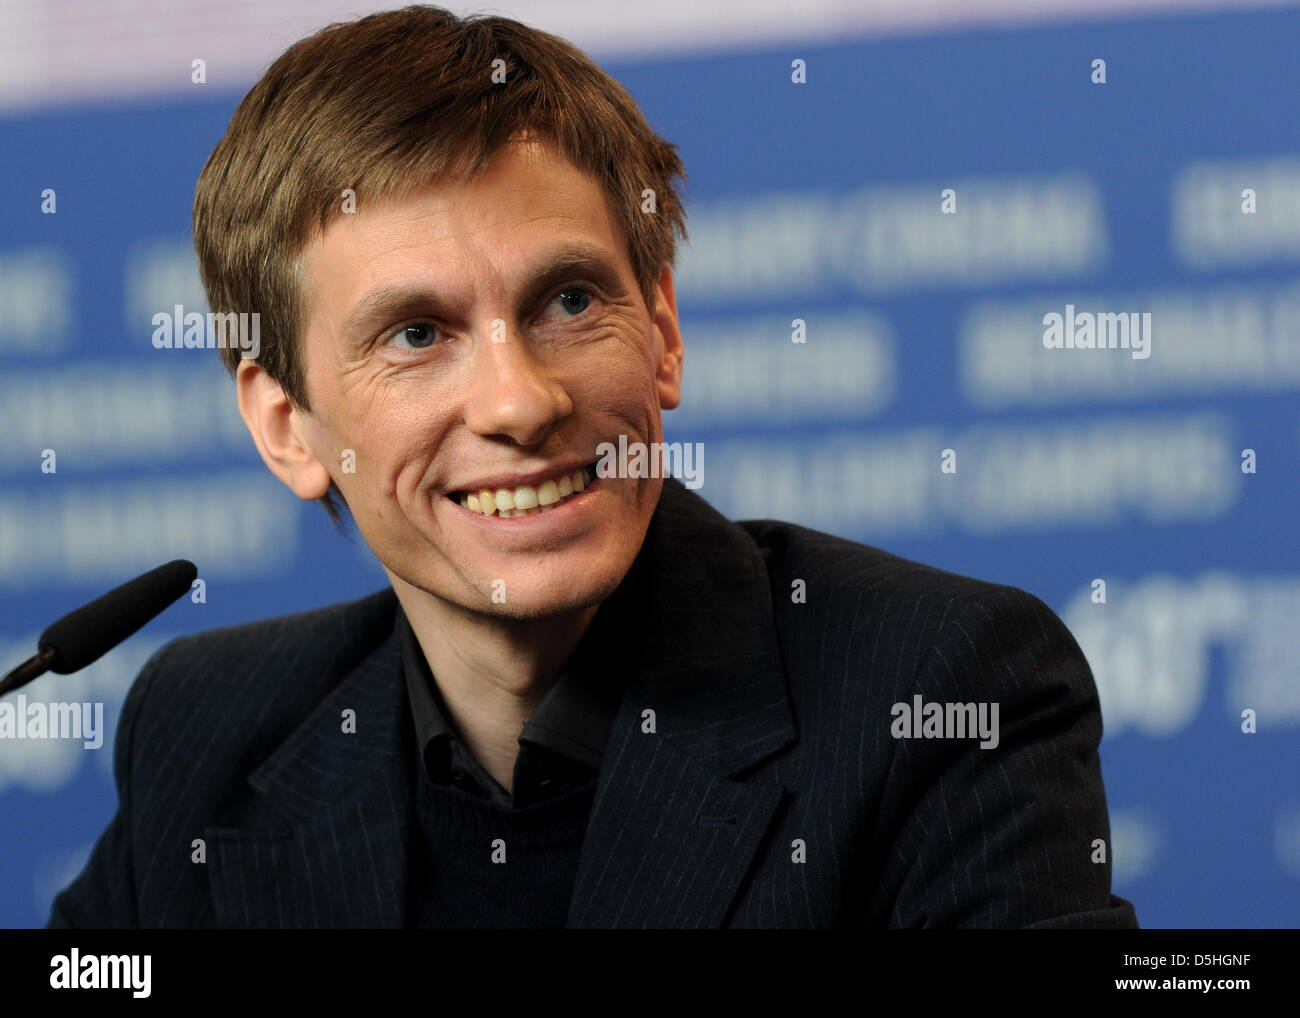 Austrian actor Andreas Lust attends the press conference on the film 'The Robber' running in competition - Stock Image